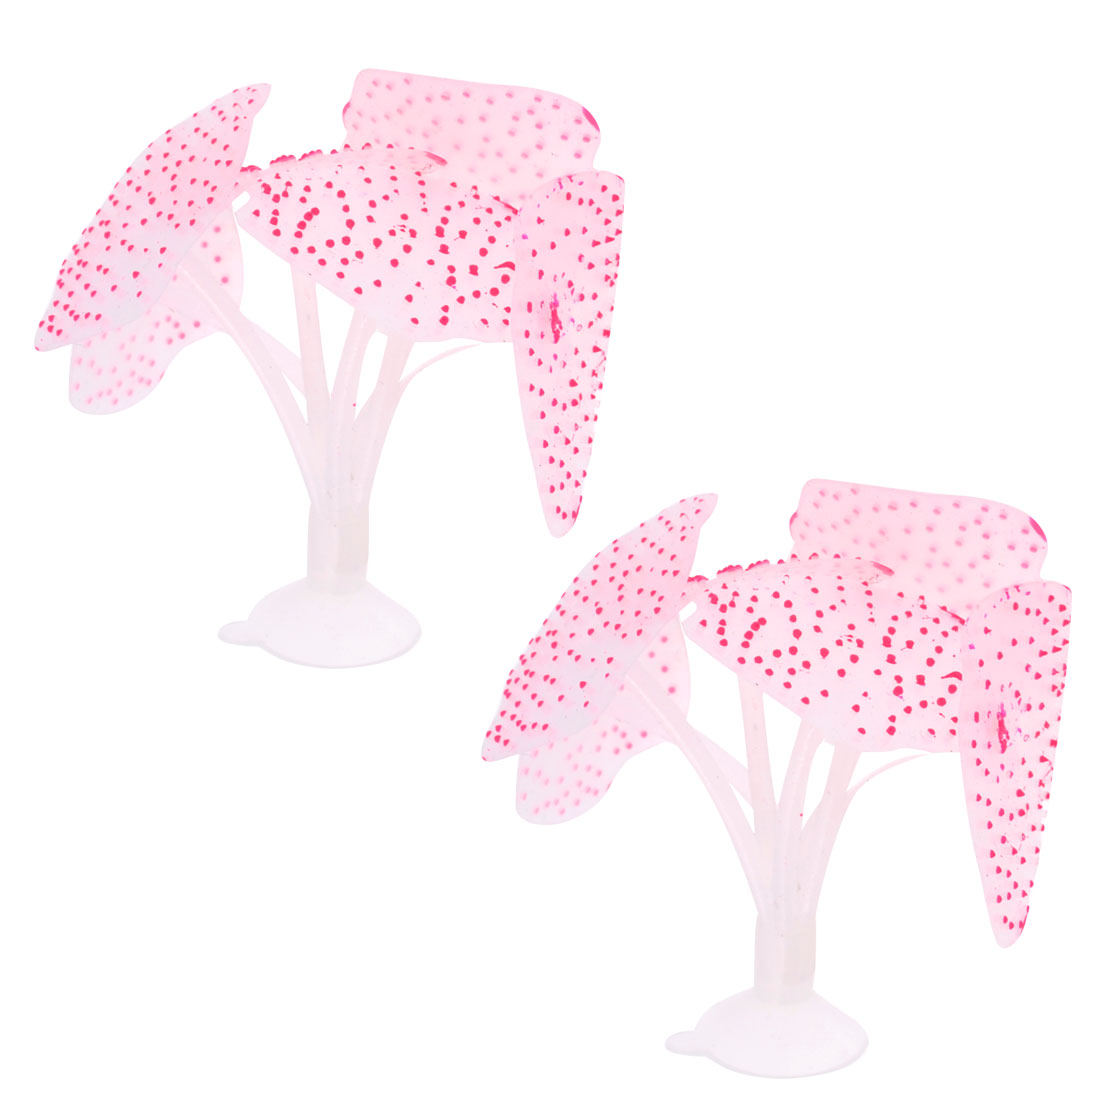 Fish Tank Fuchsia Dotted White Silicone Sea Anemone Coral Mushroom Ornament 2 Pcs